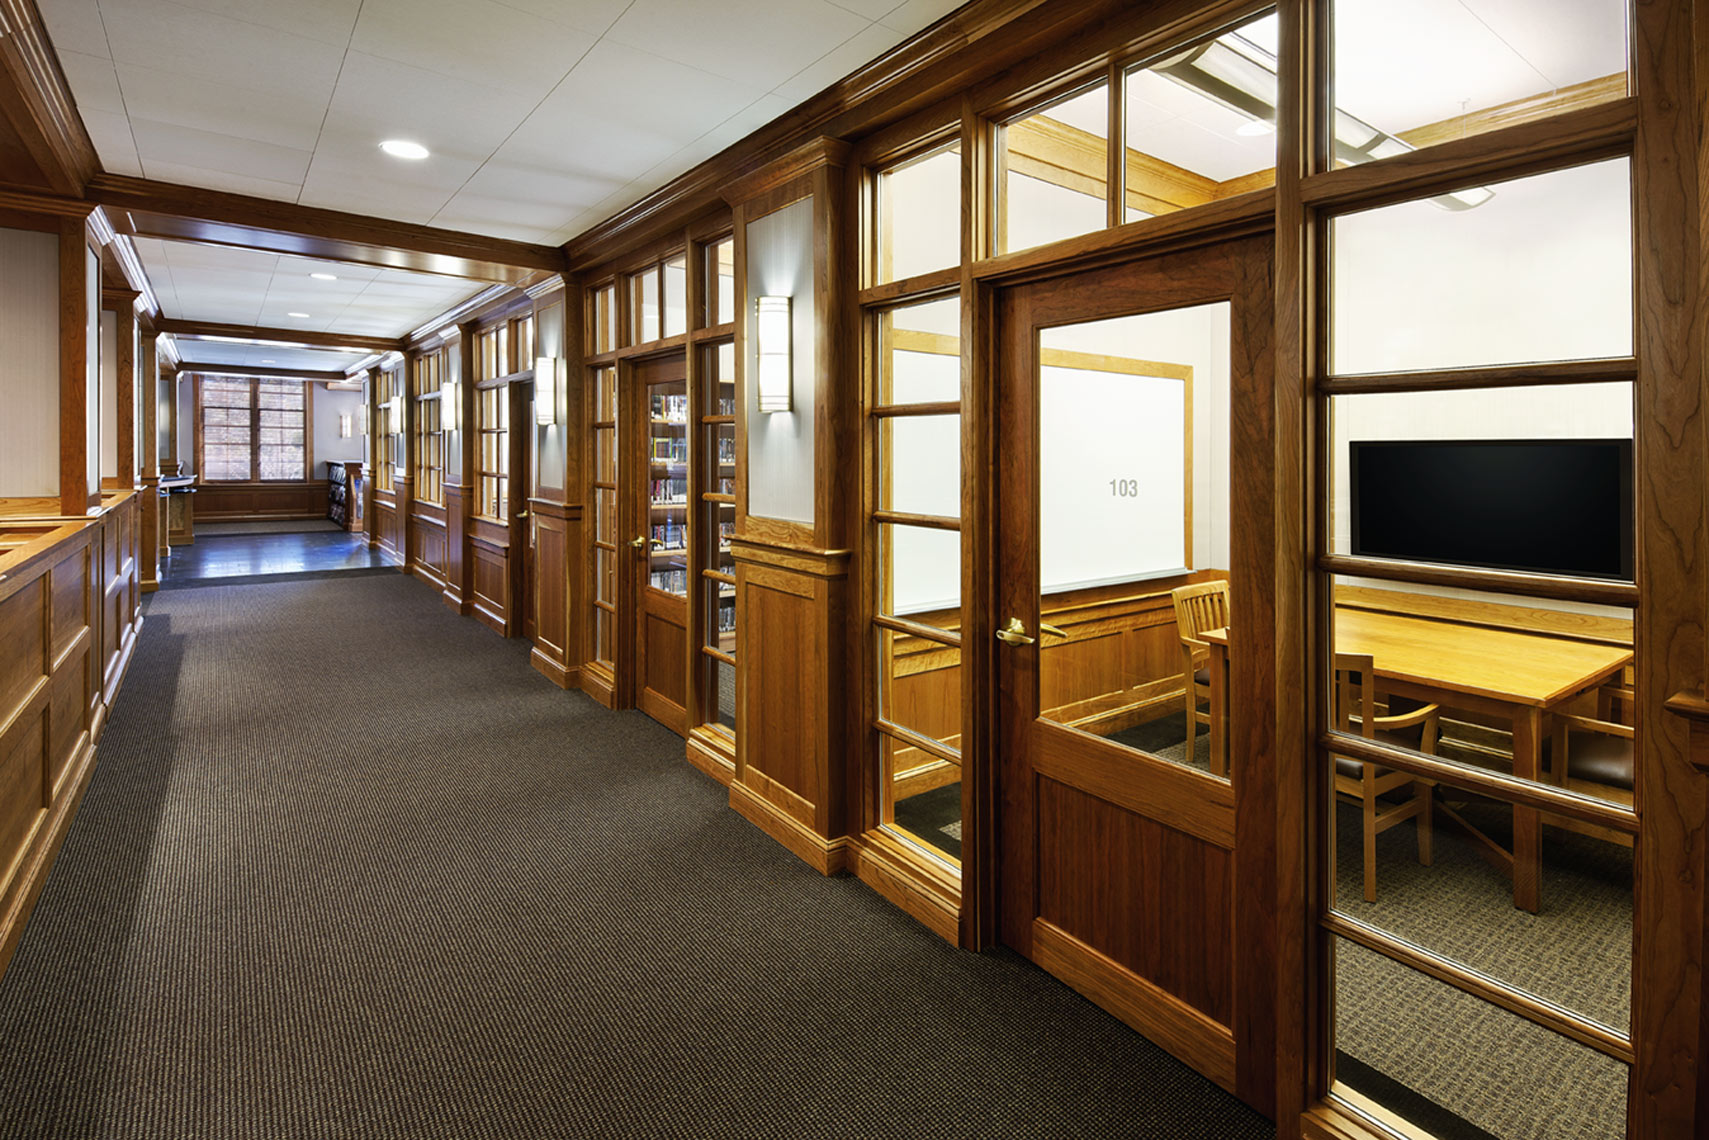 architectural photograph of a high school library interior